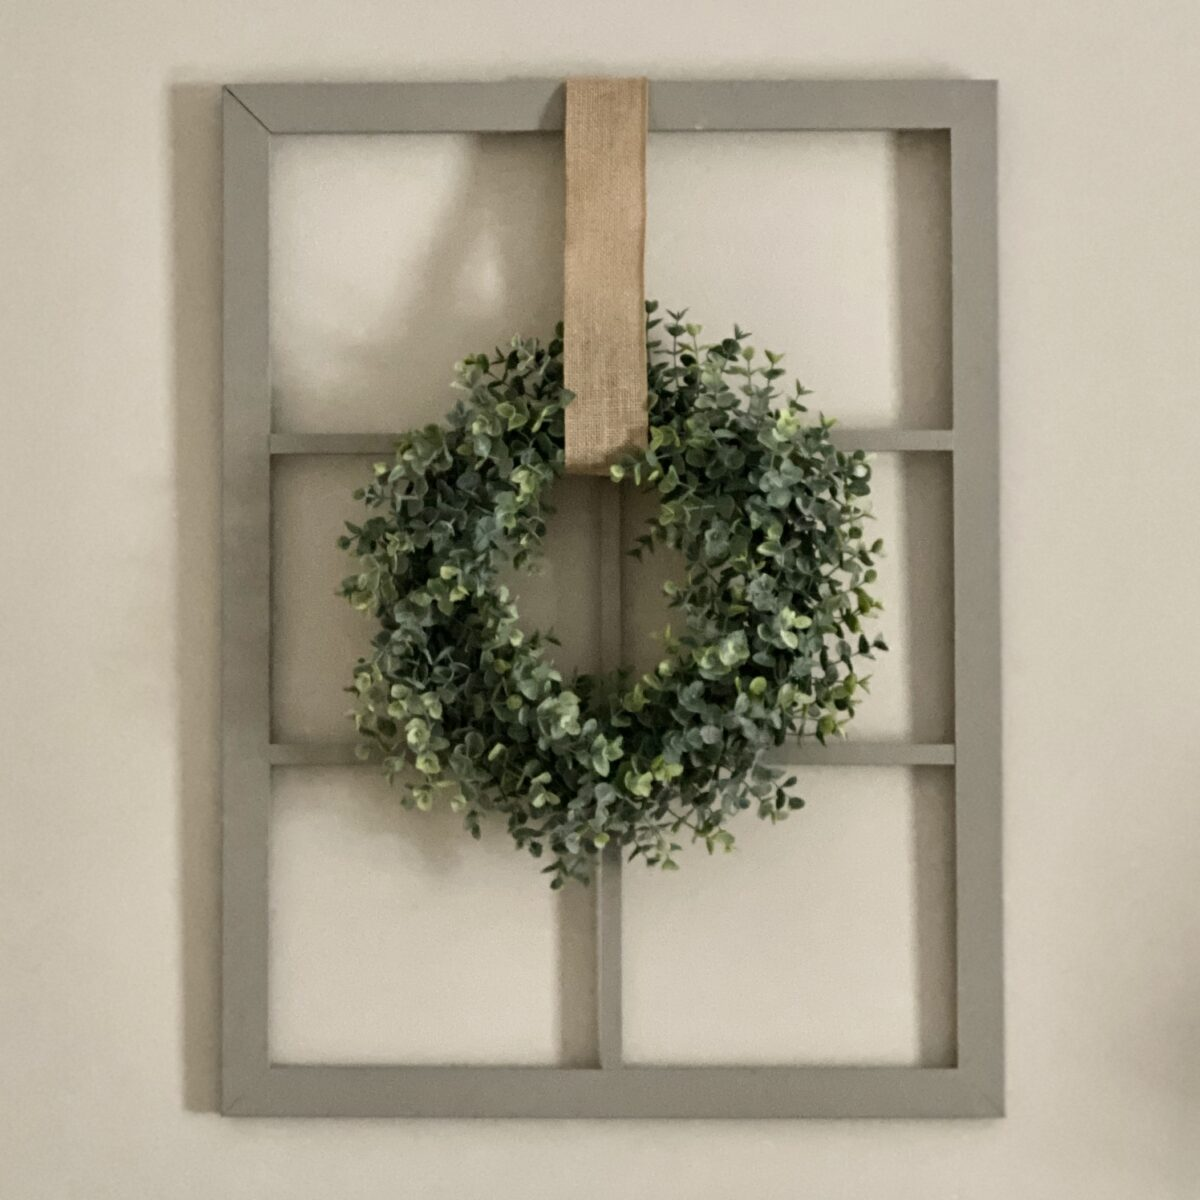 Updating Old Windows with Paint and Wreaths